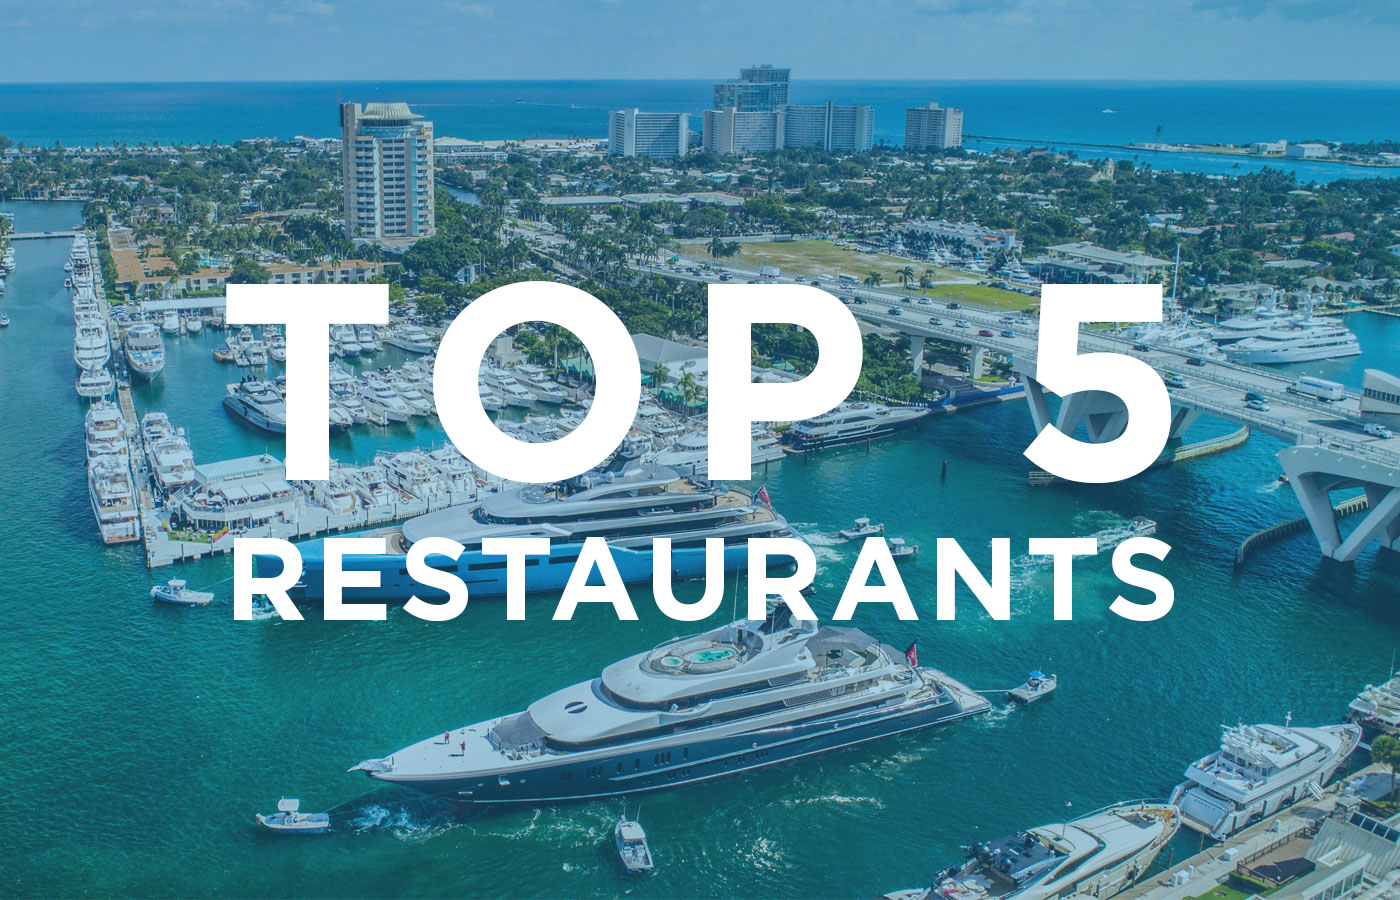 Top 5 Restaurants To Try Near FLIBS 2019 [Boat Show Guide]